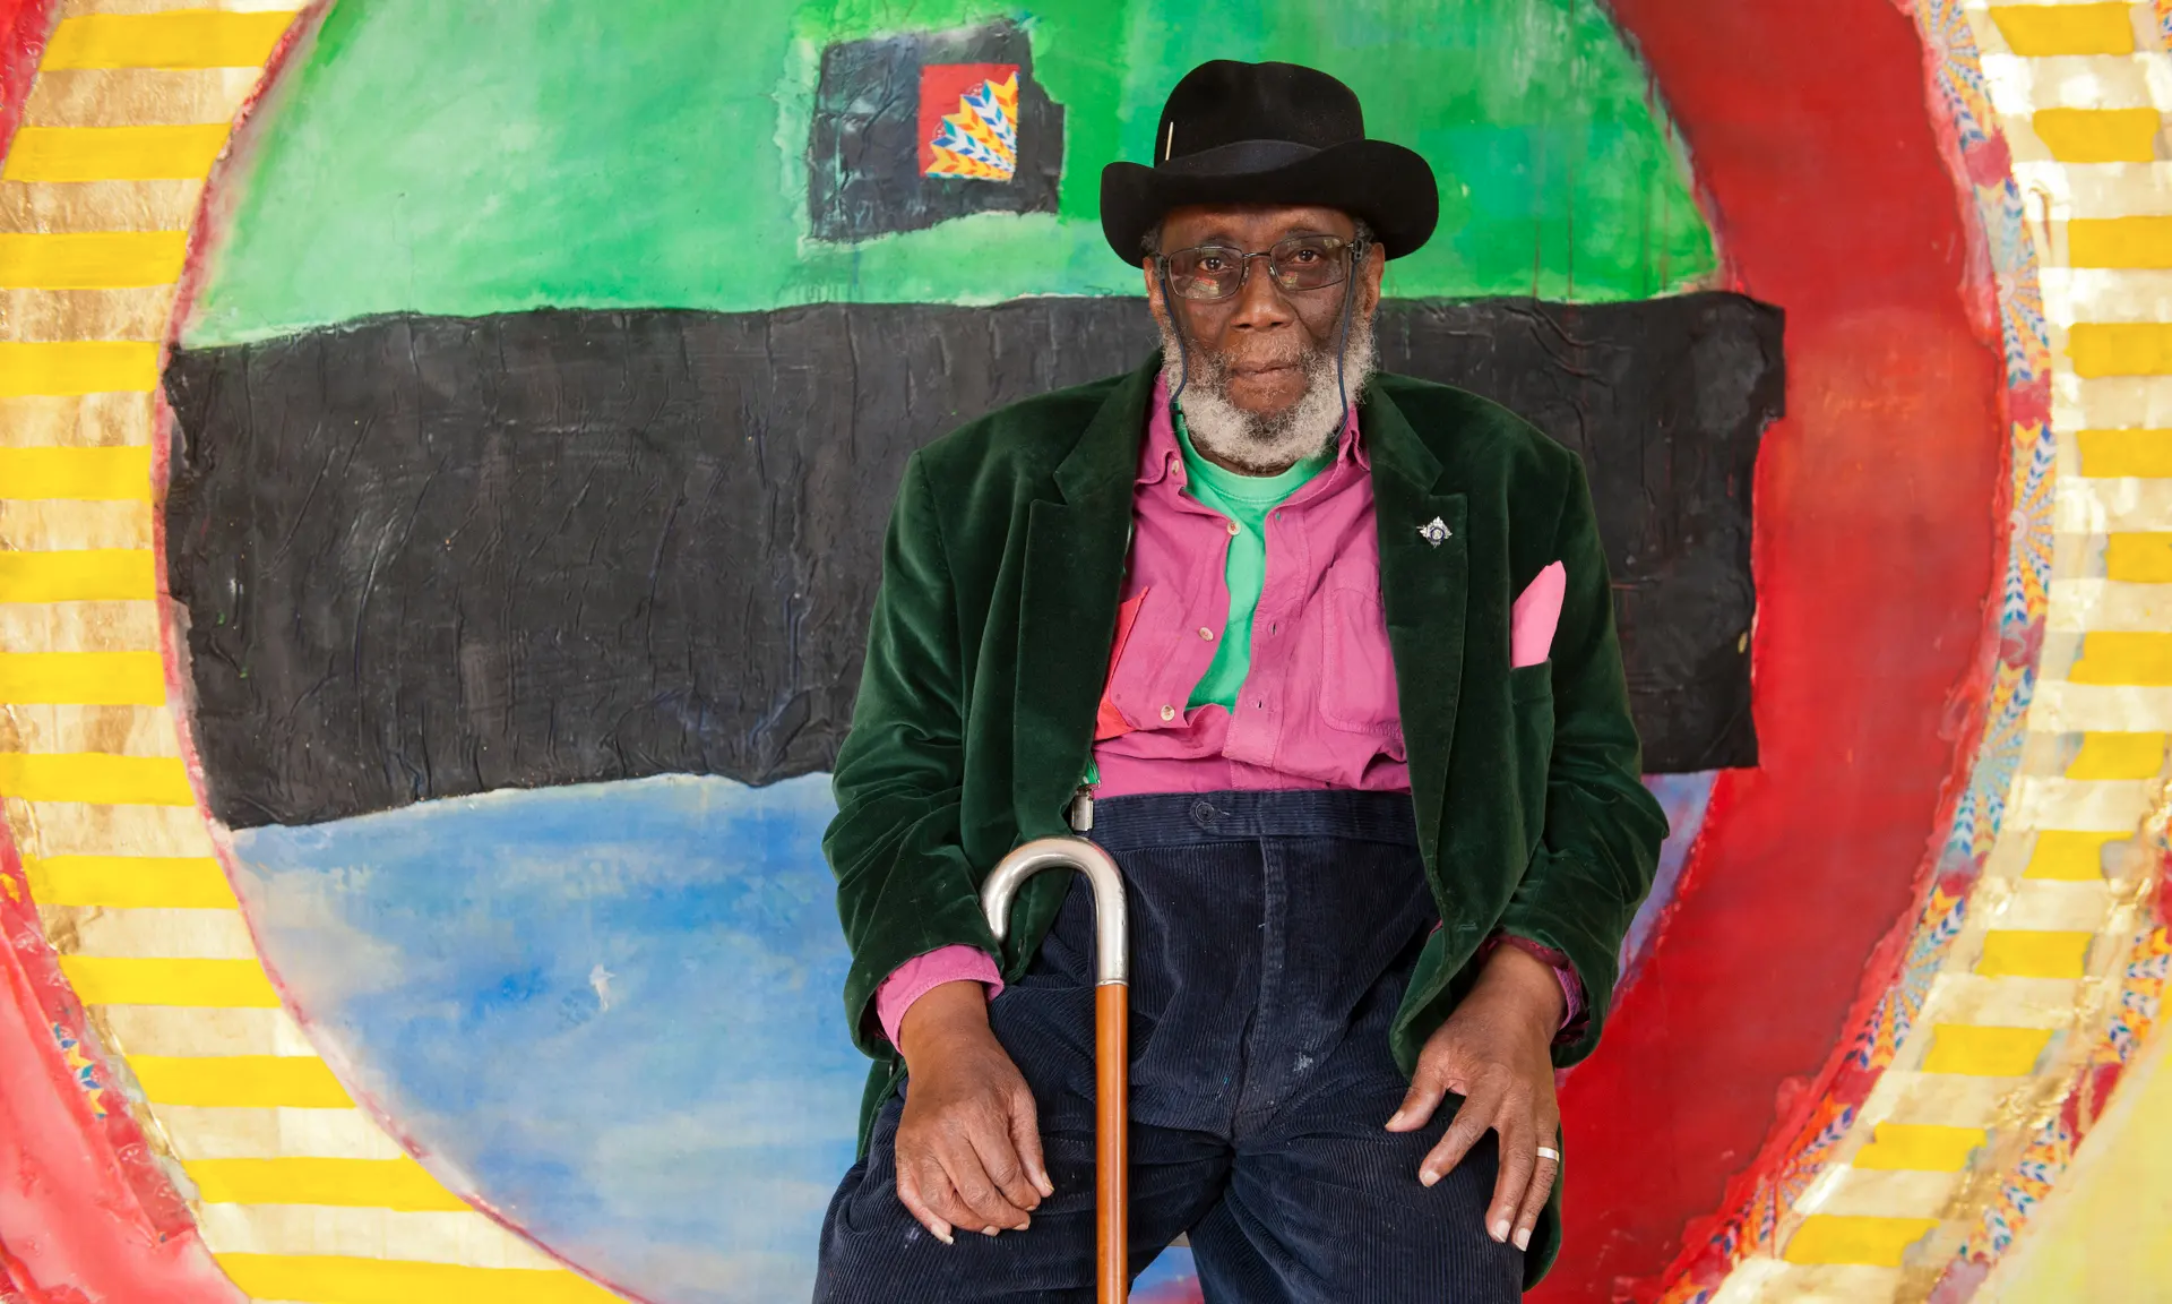 Frank Bowling the artist in his studio in South London via Jill Mead, the Guardian 👨��🎨